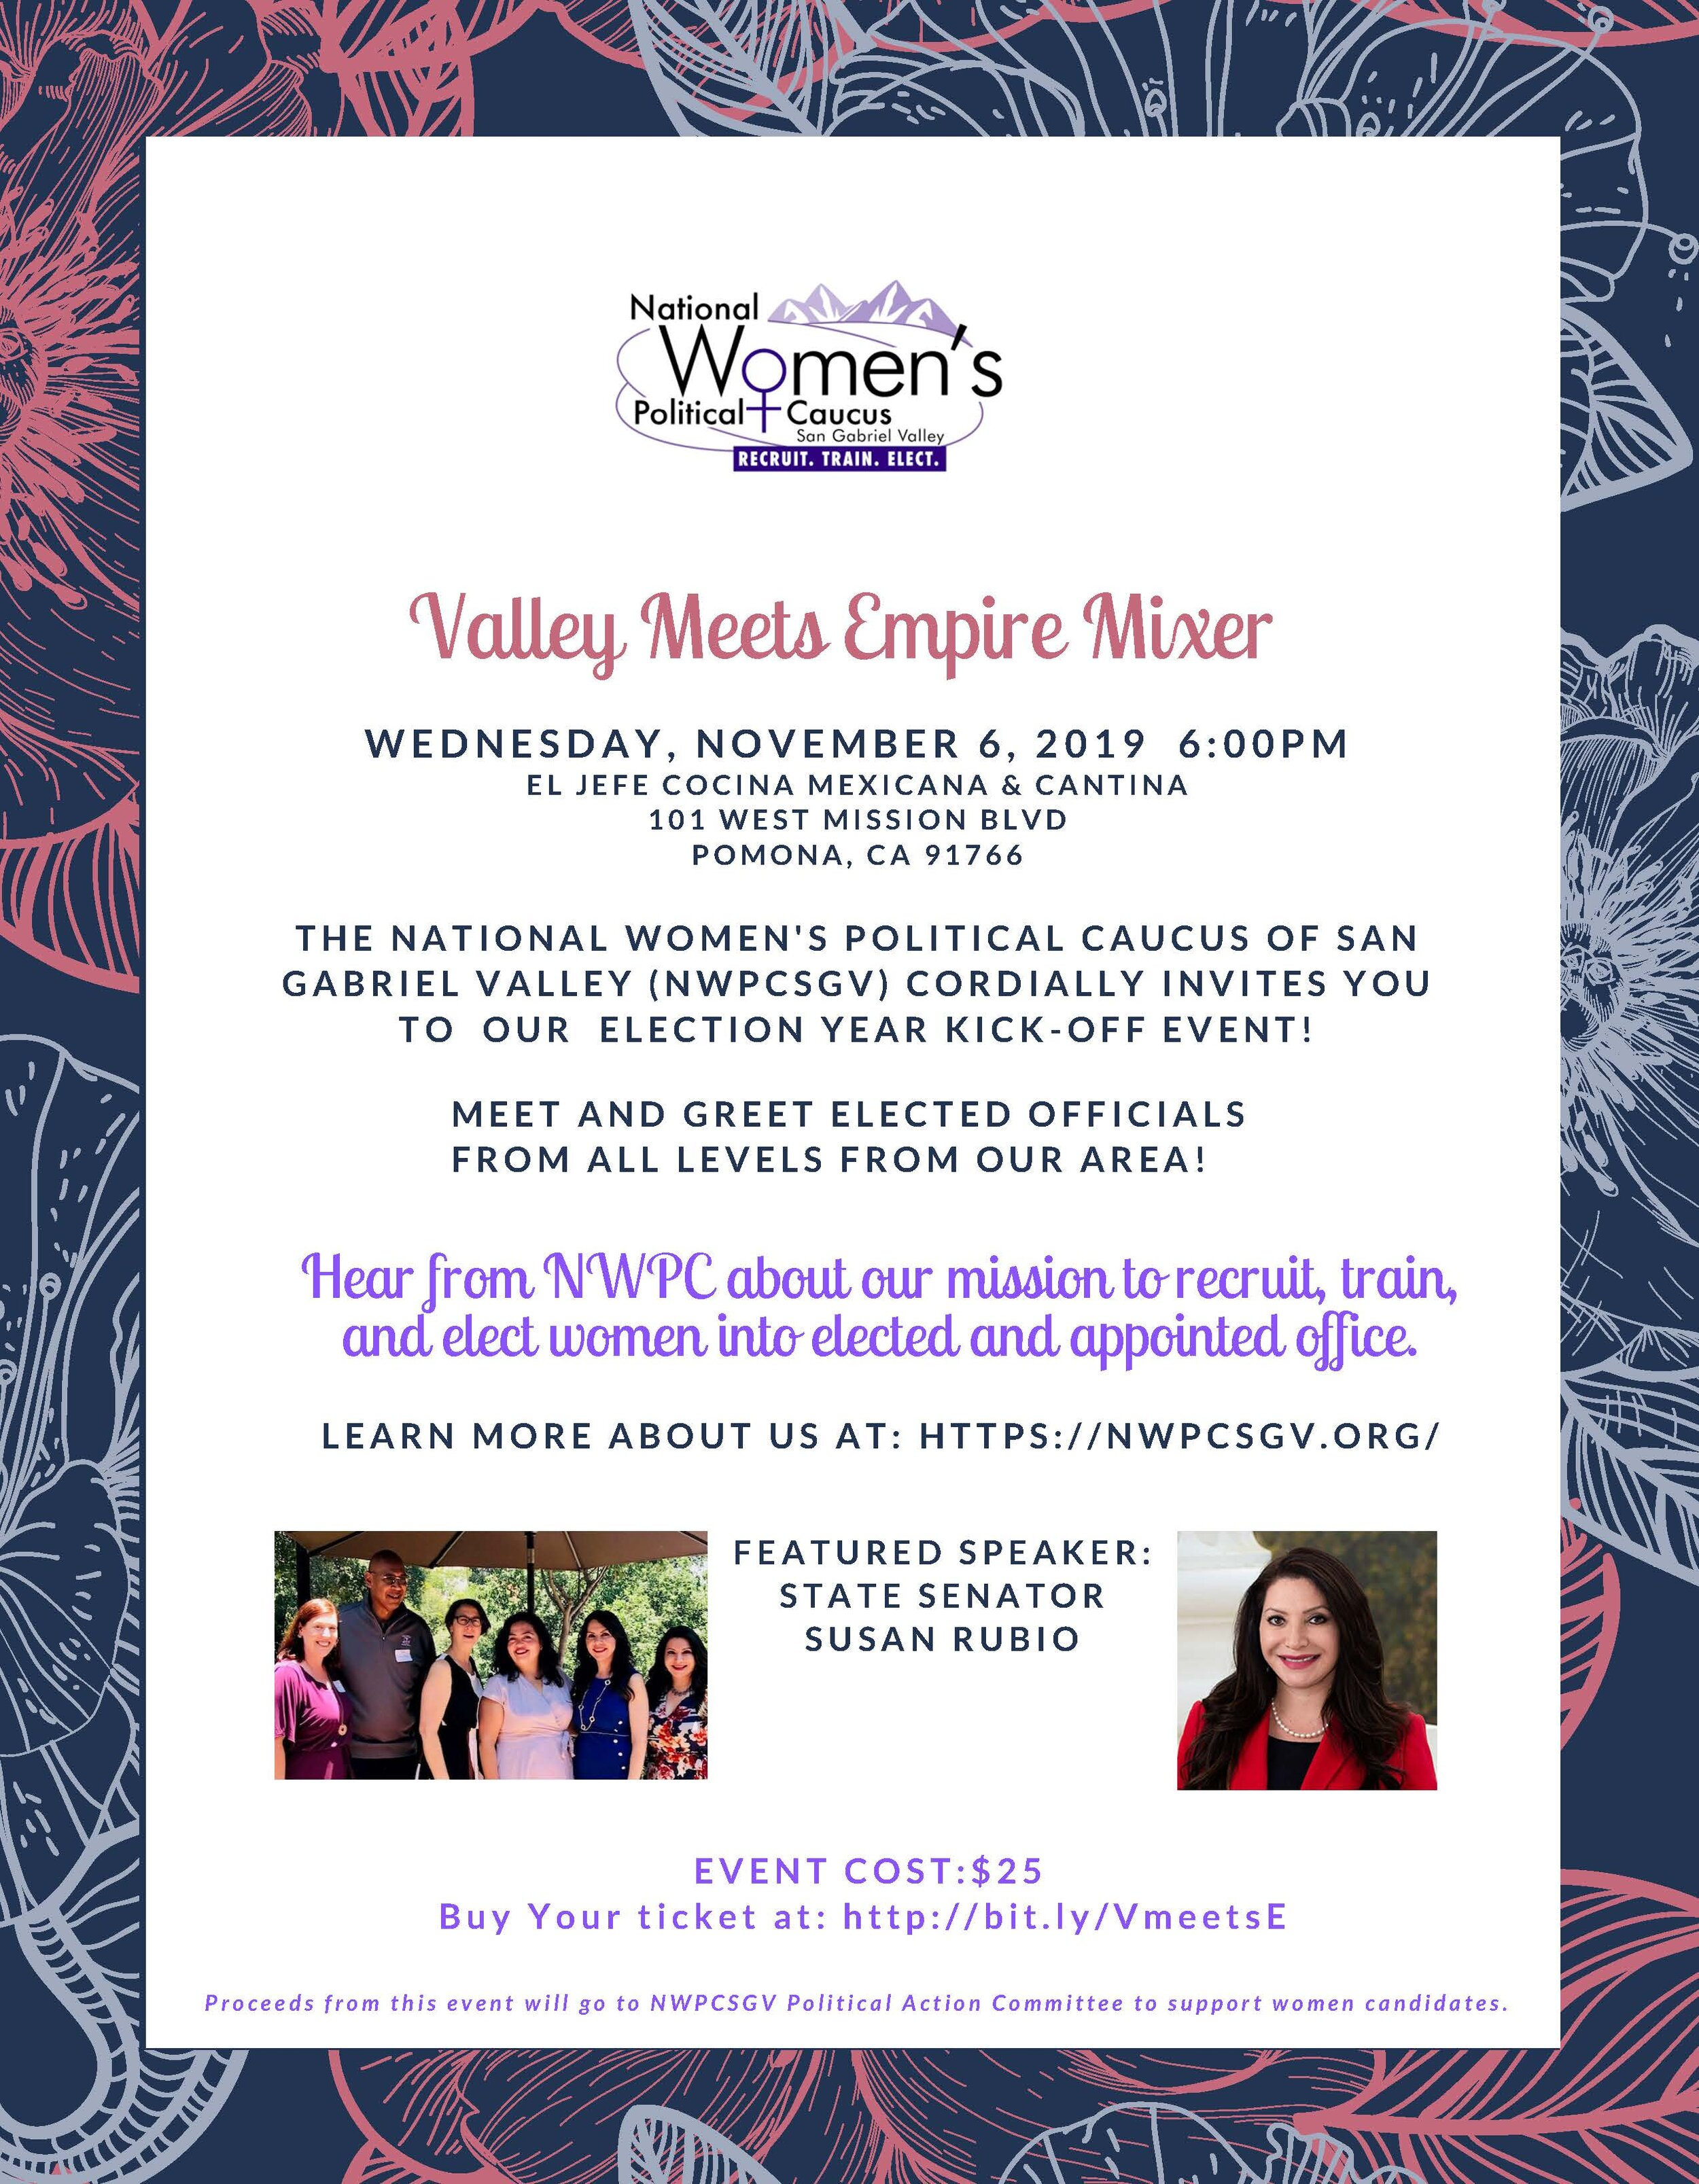 Valley Meets Empire Mixer / Fundraiser - Join us as we meet and greet women from San Gabriel Valley and the Inland Empire!